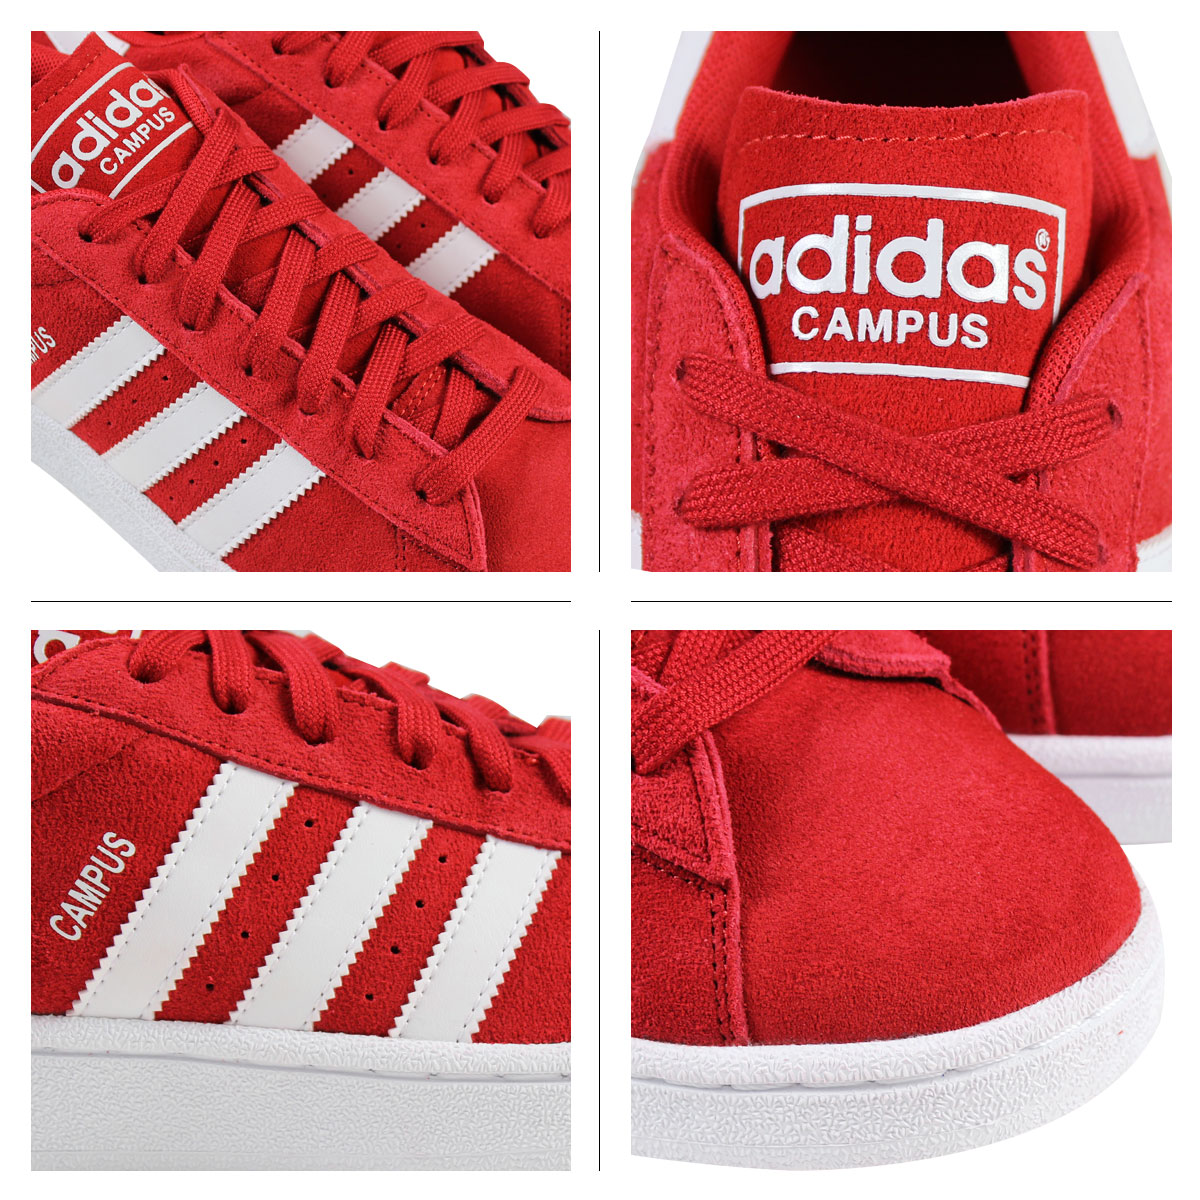 Adidas originals adidas Originals mens CAMPUS sneakers campus S85907 Scarlett [7/31 new in stock]